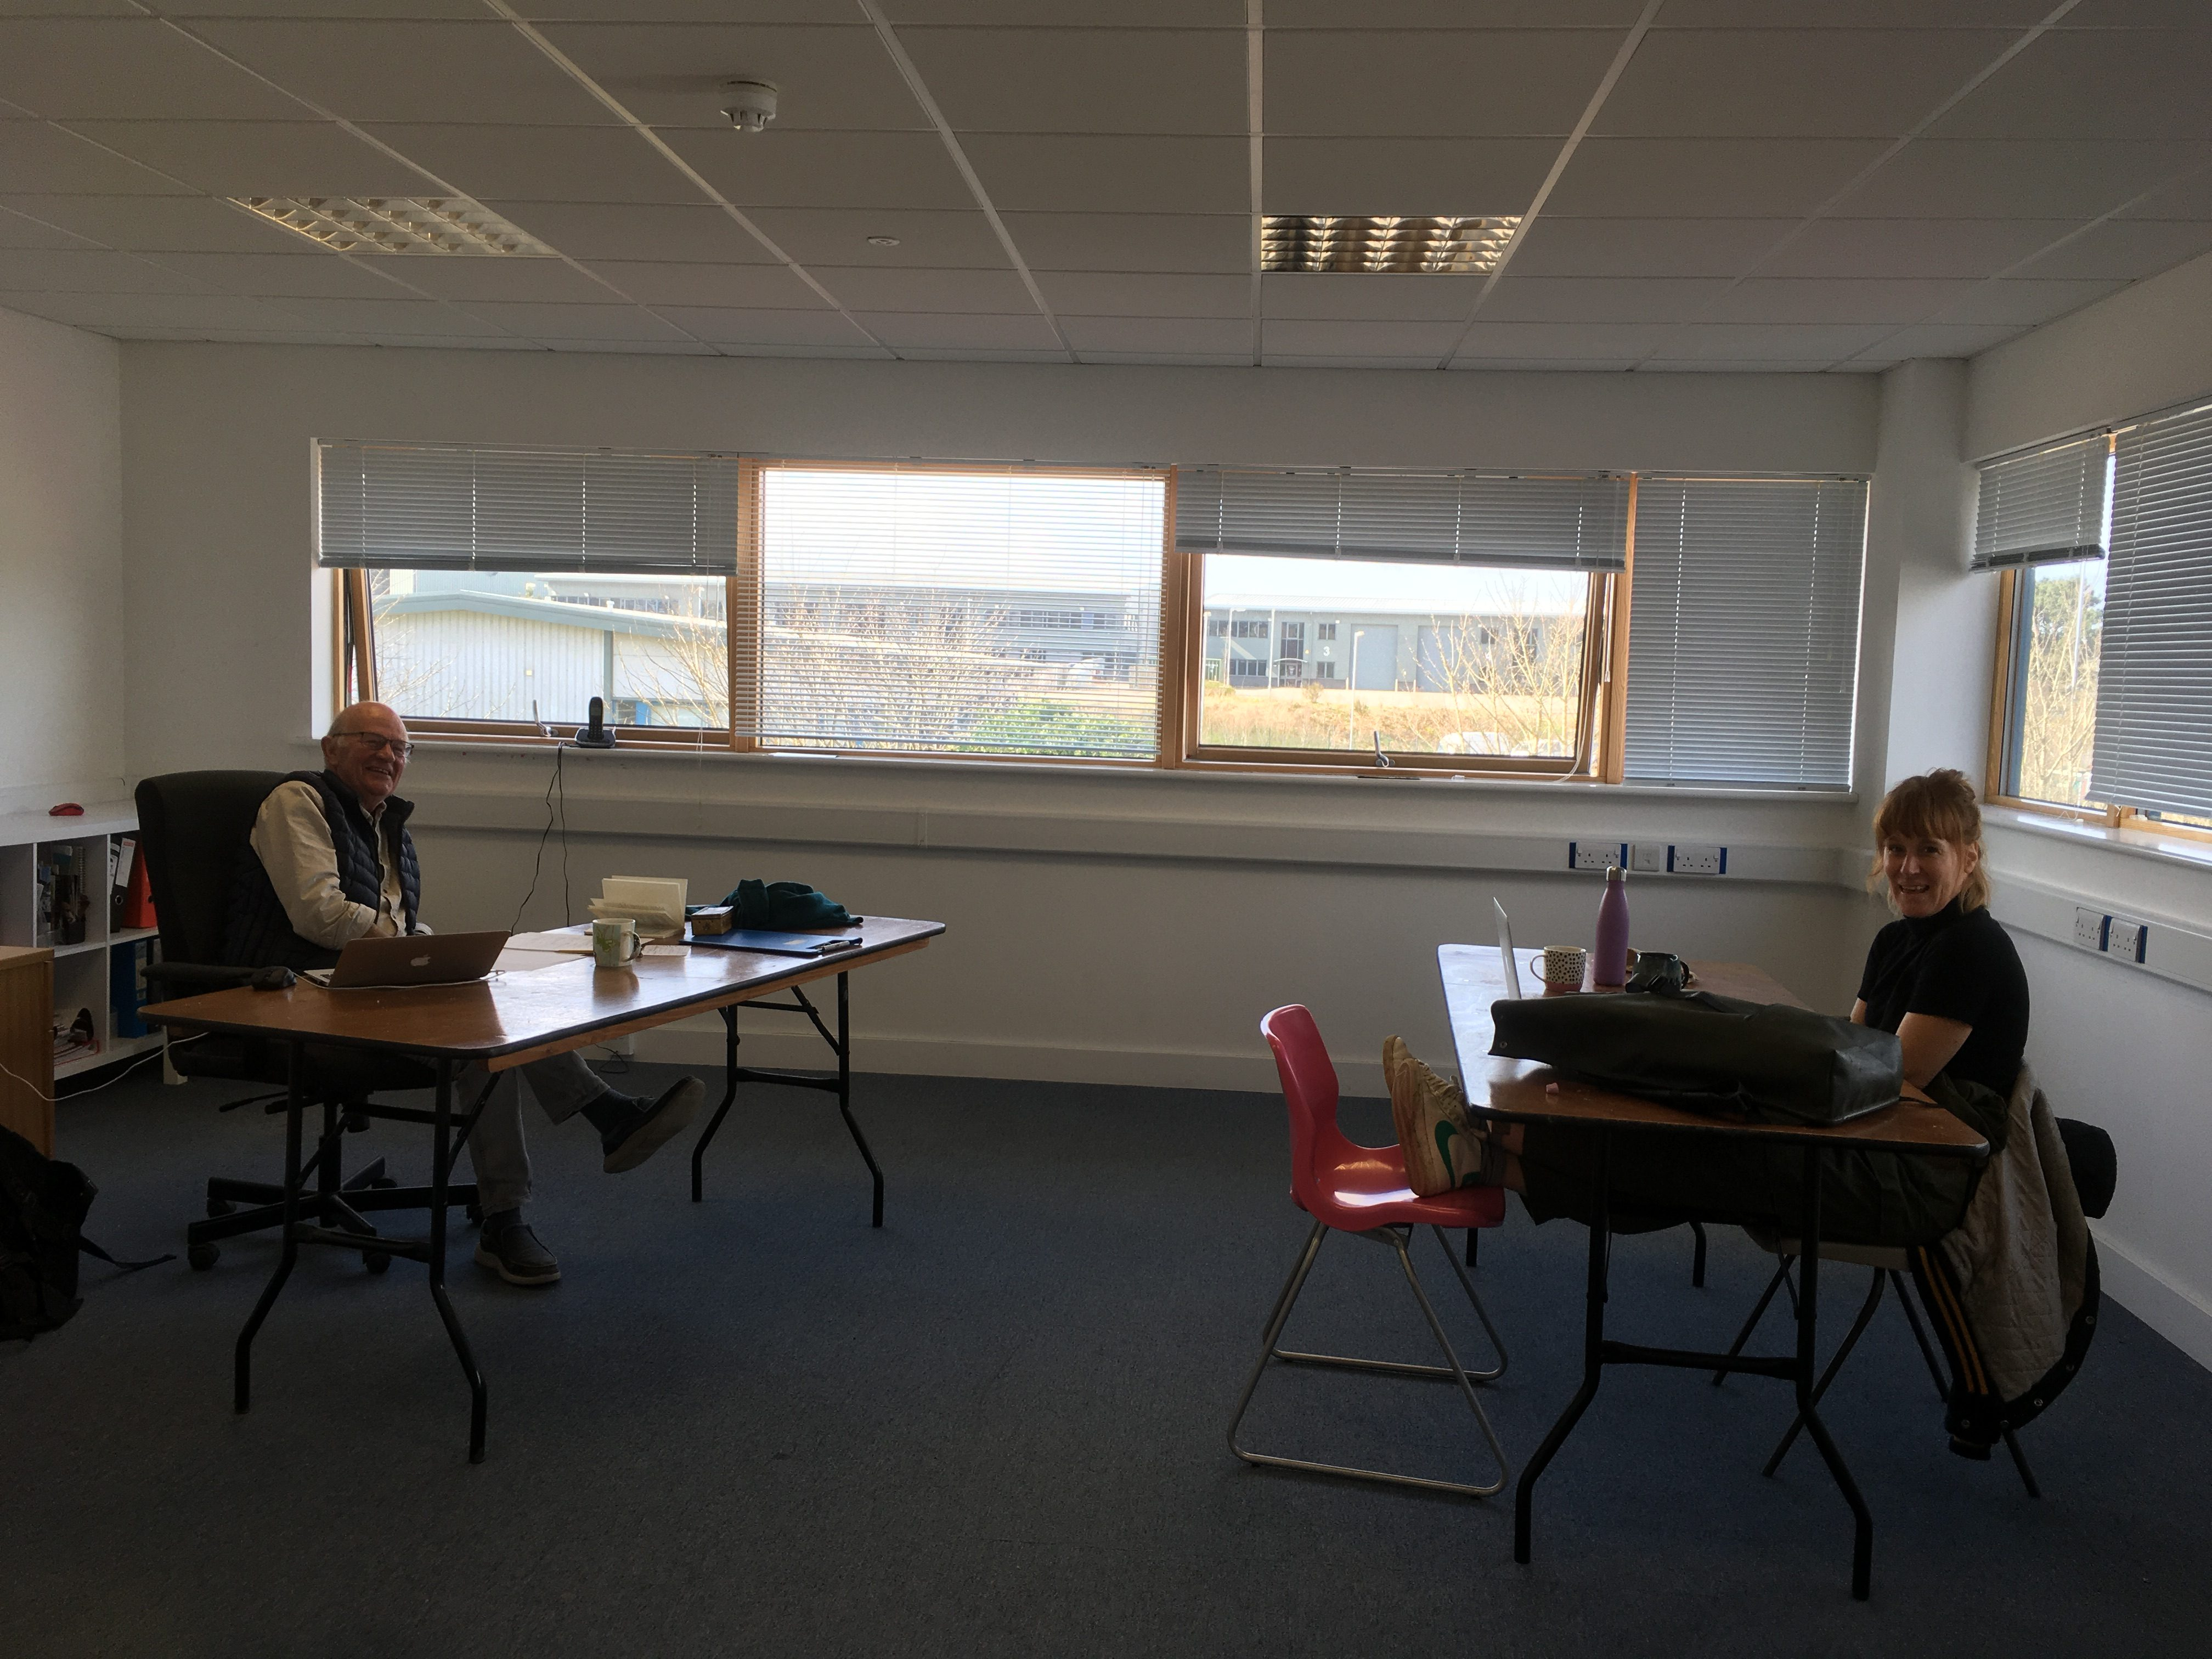 Hot Desking in the upstairs meeting space